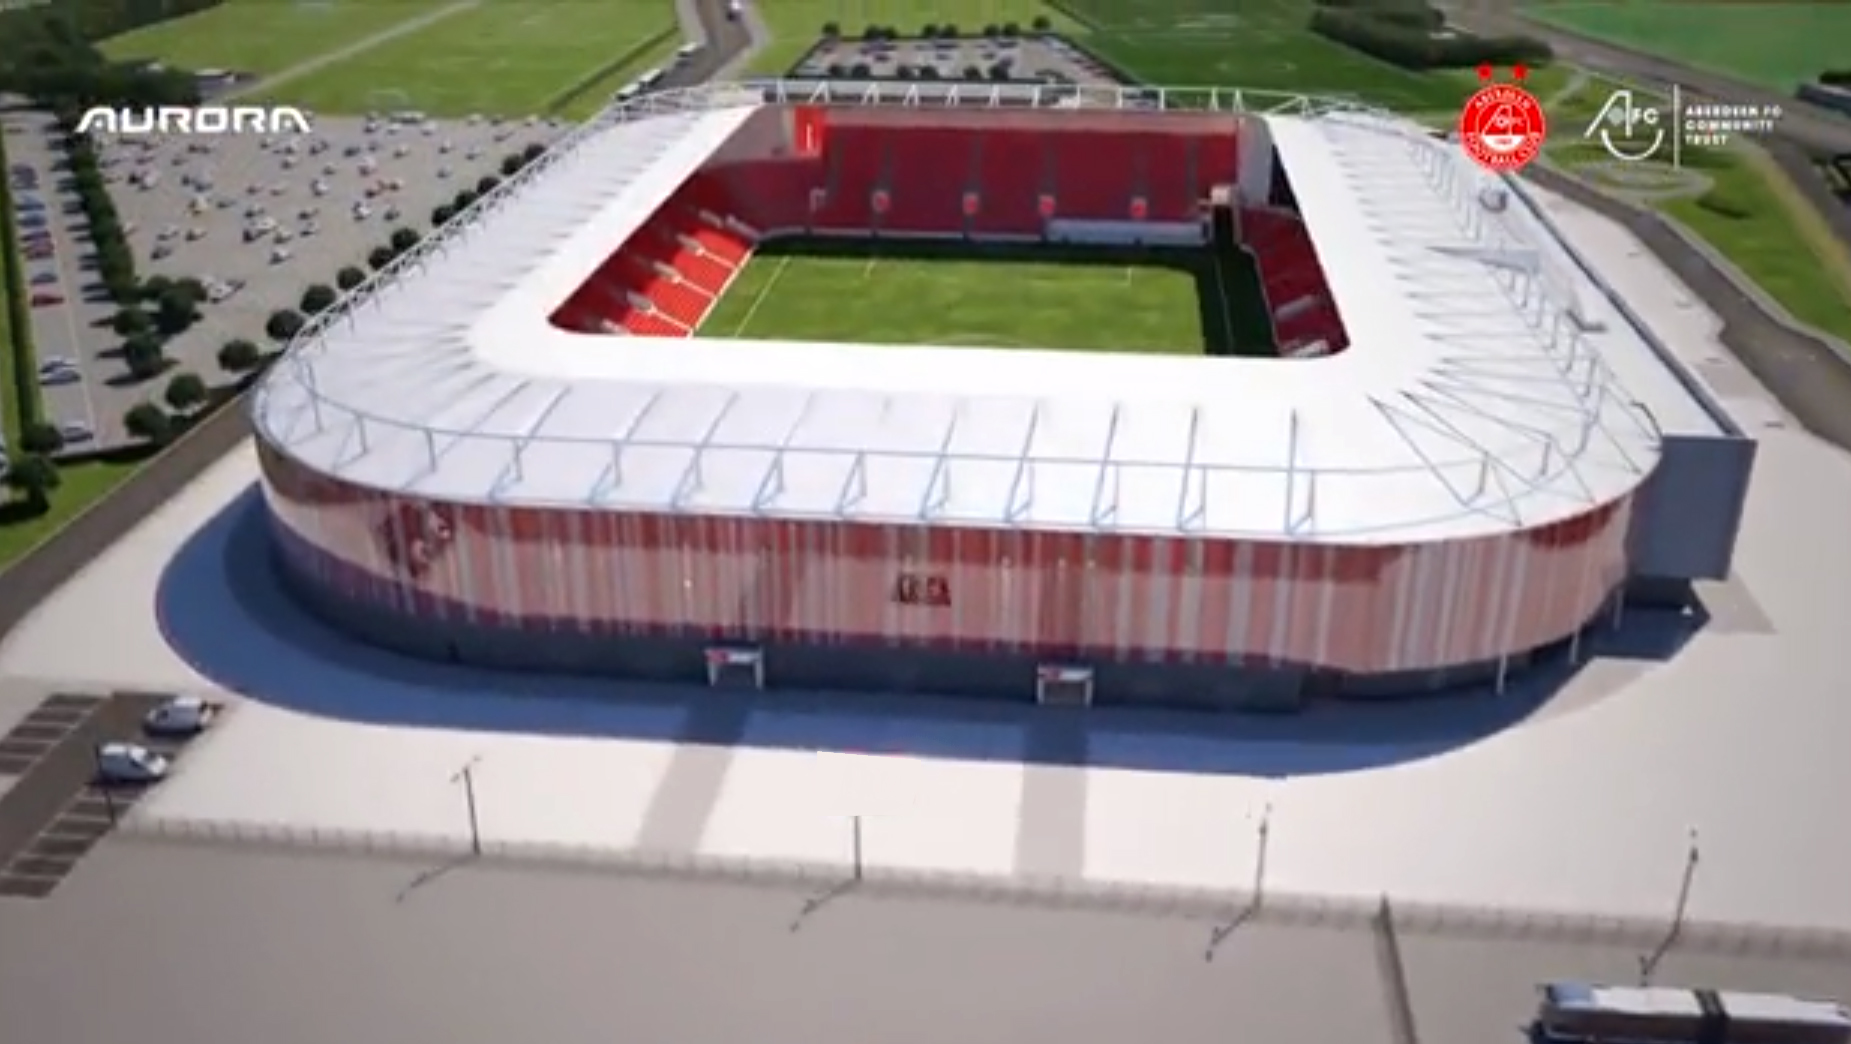 An artist's impression of the new Dons stadium at Kingsford.